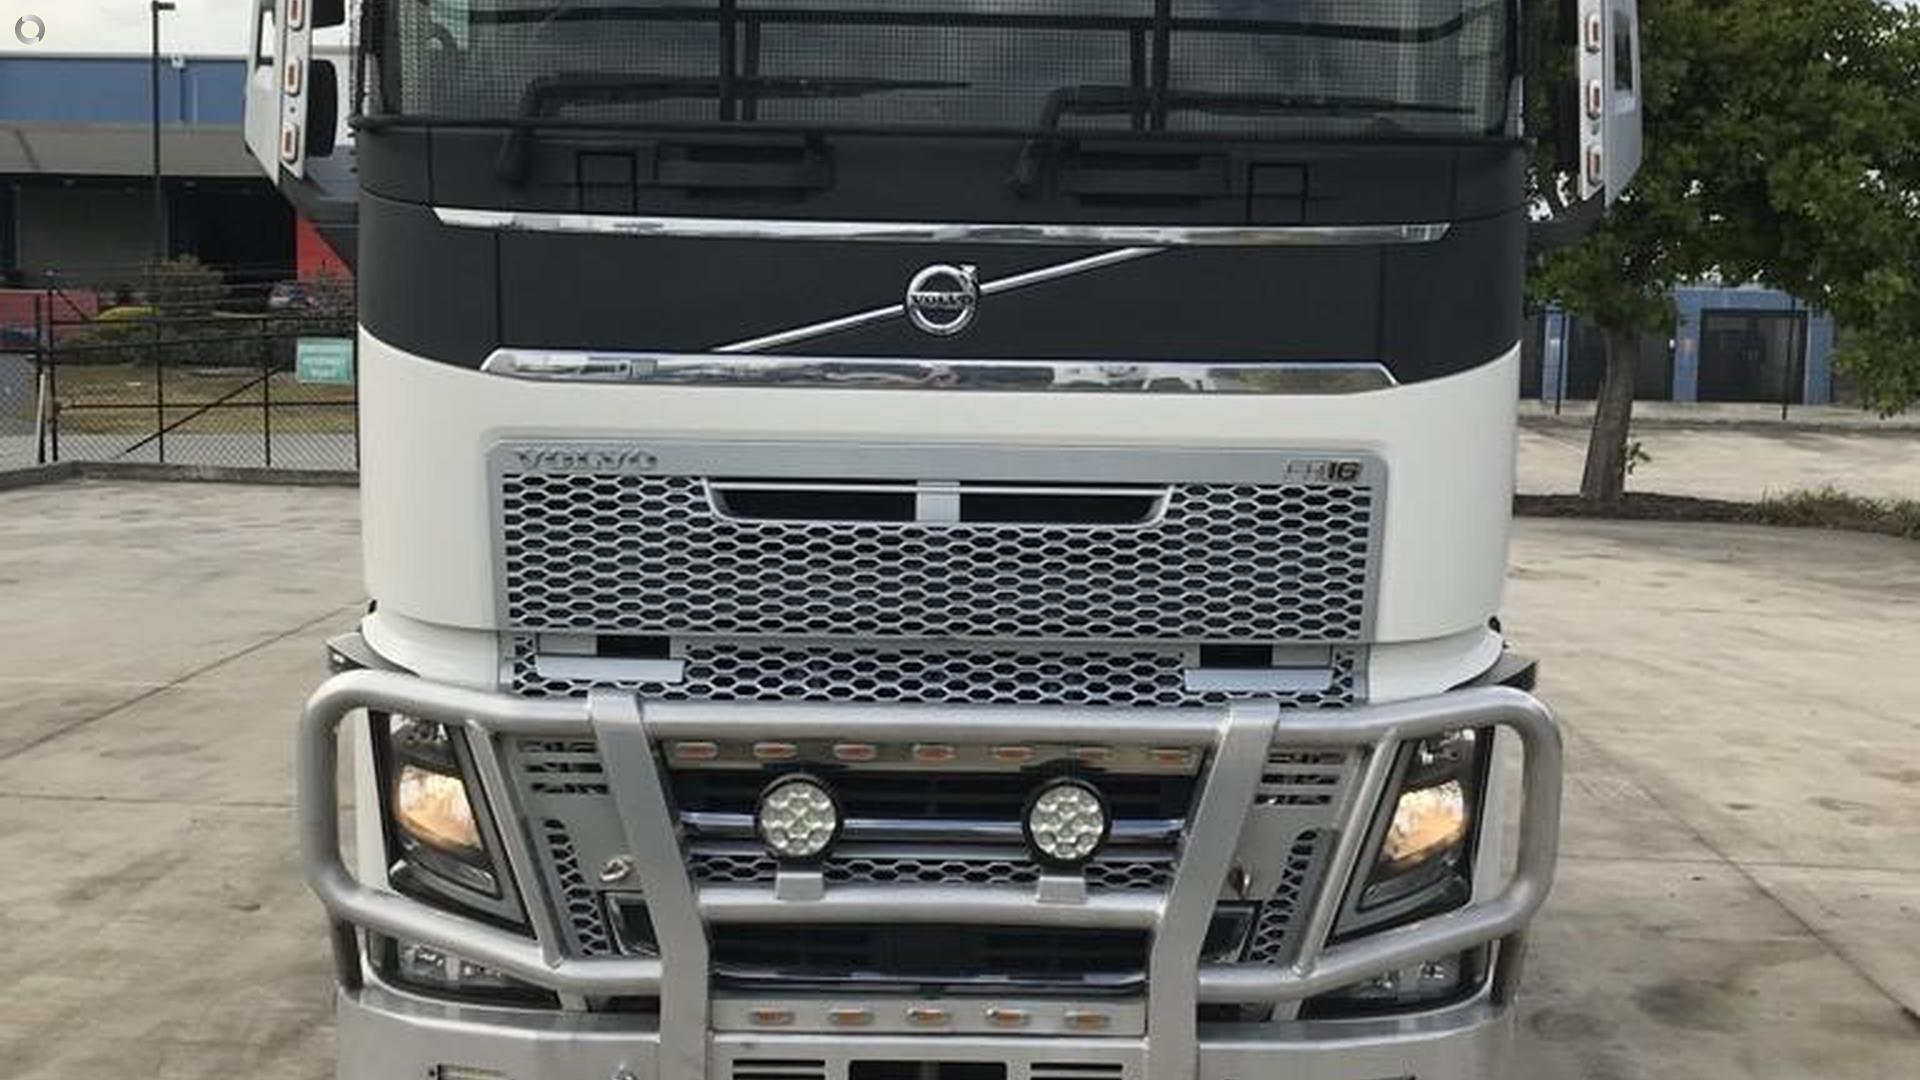 2015 Volvo FH600 2.99% FINANCE conditions apply